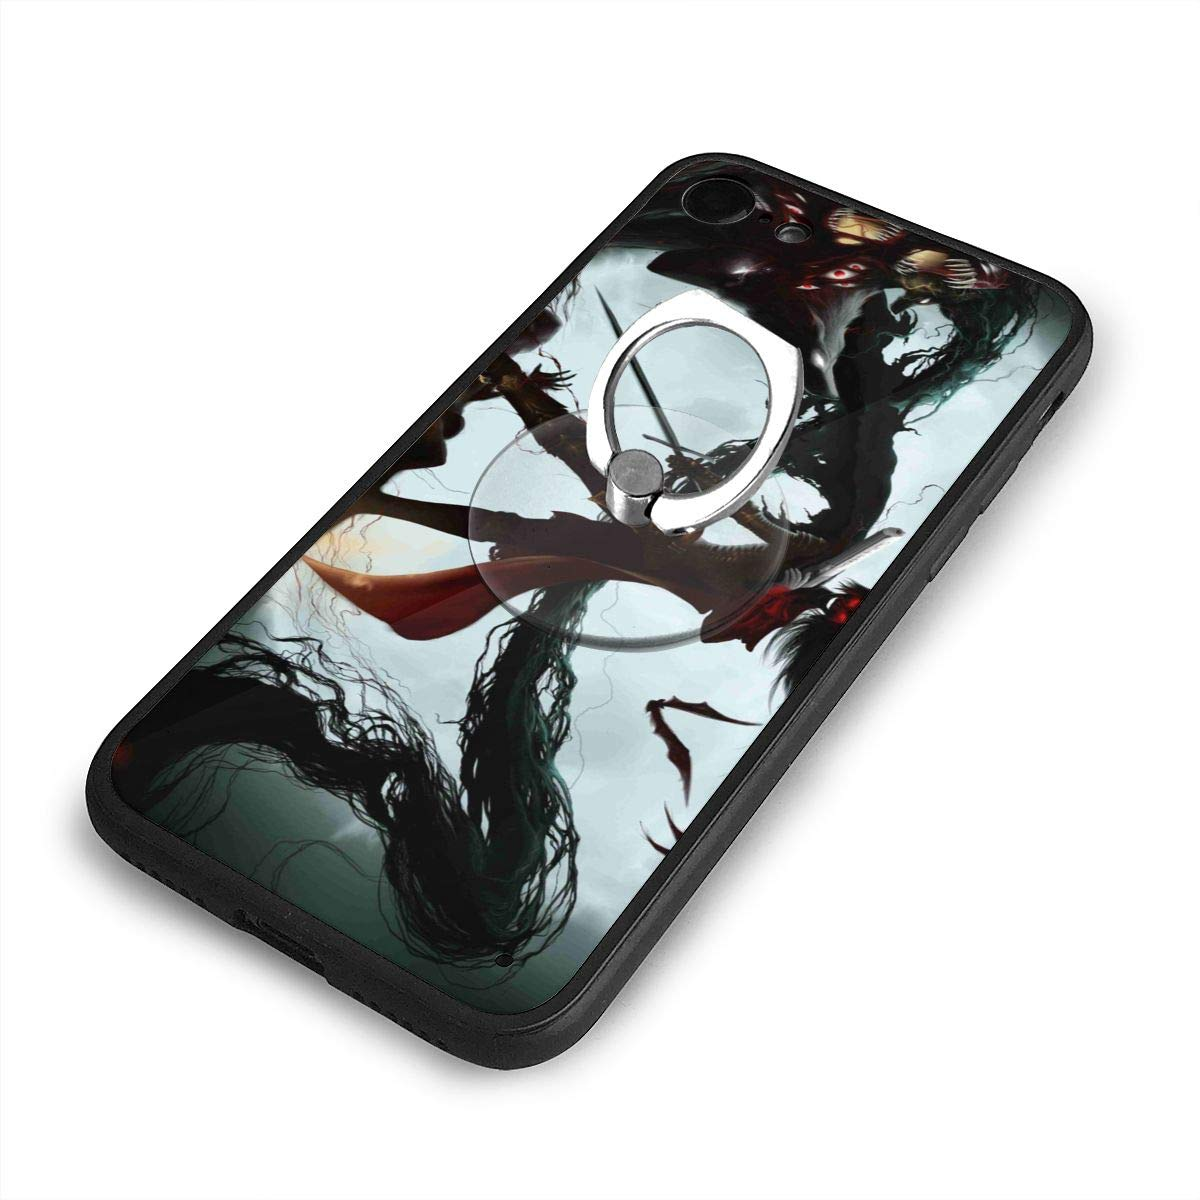 762092147f4e Amazon.com: Ernestine M Davis Hellsing Ultimate Customized Phone ...